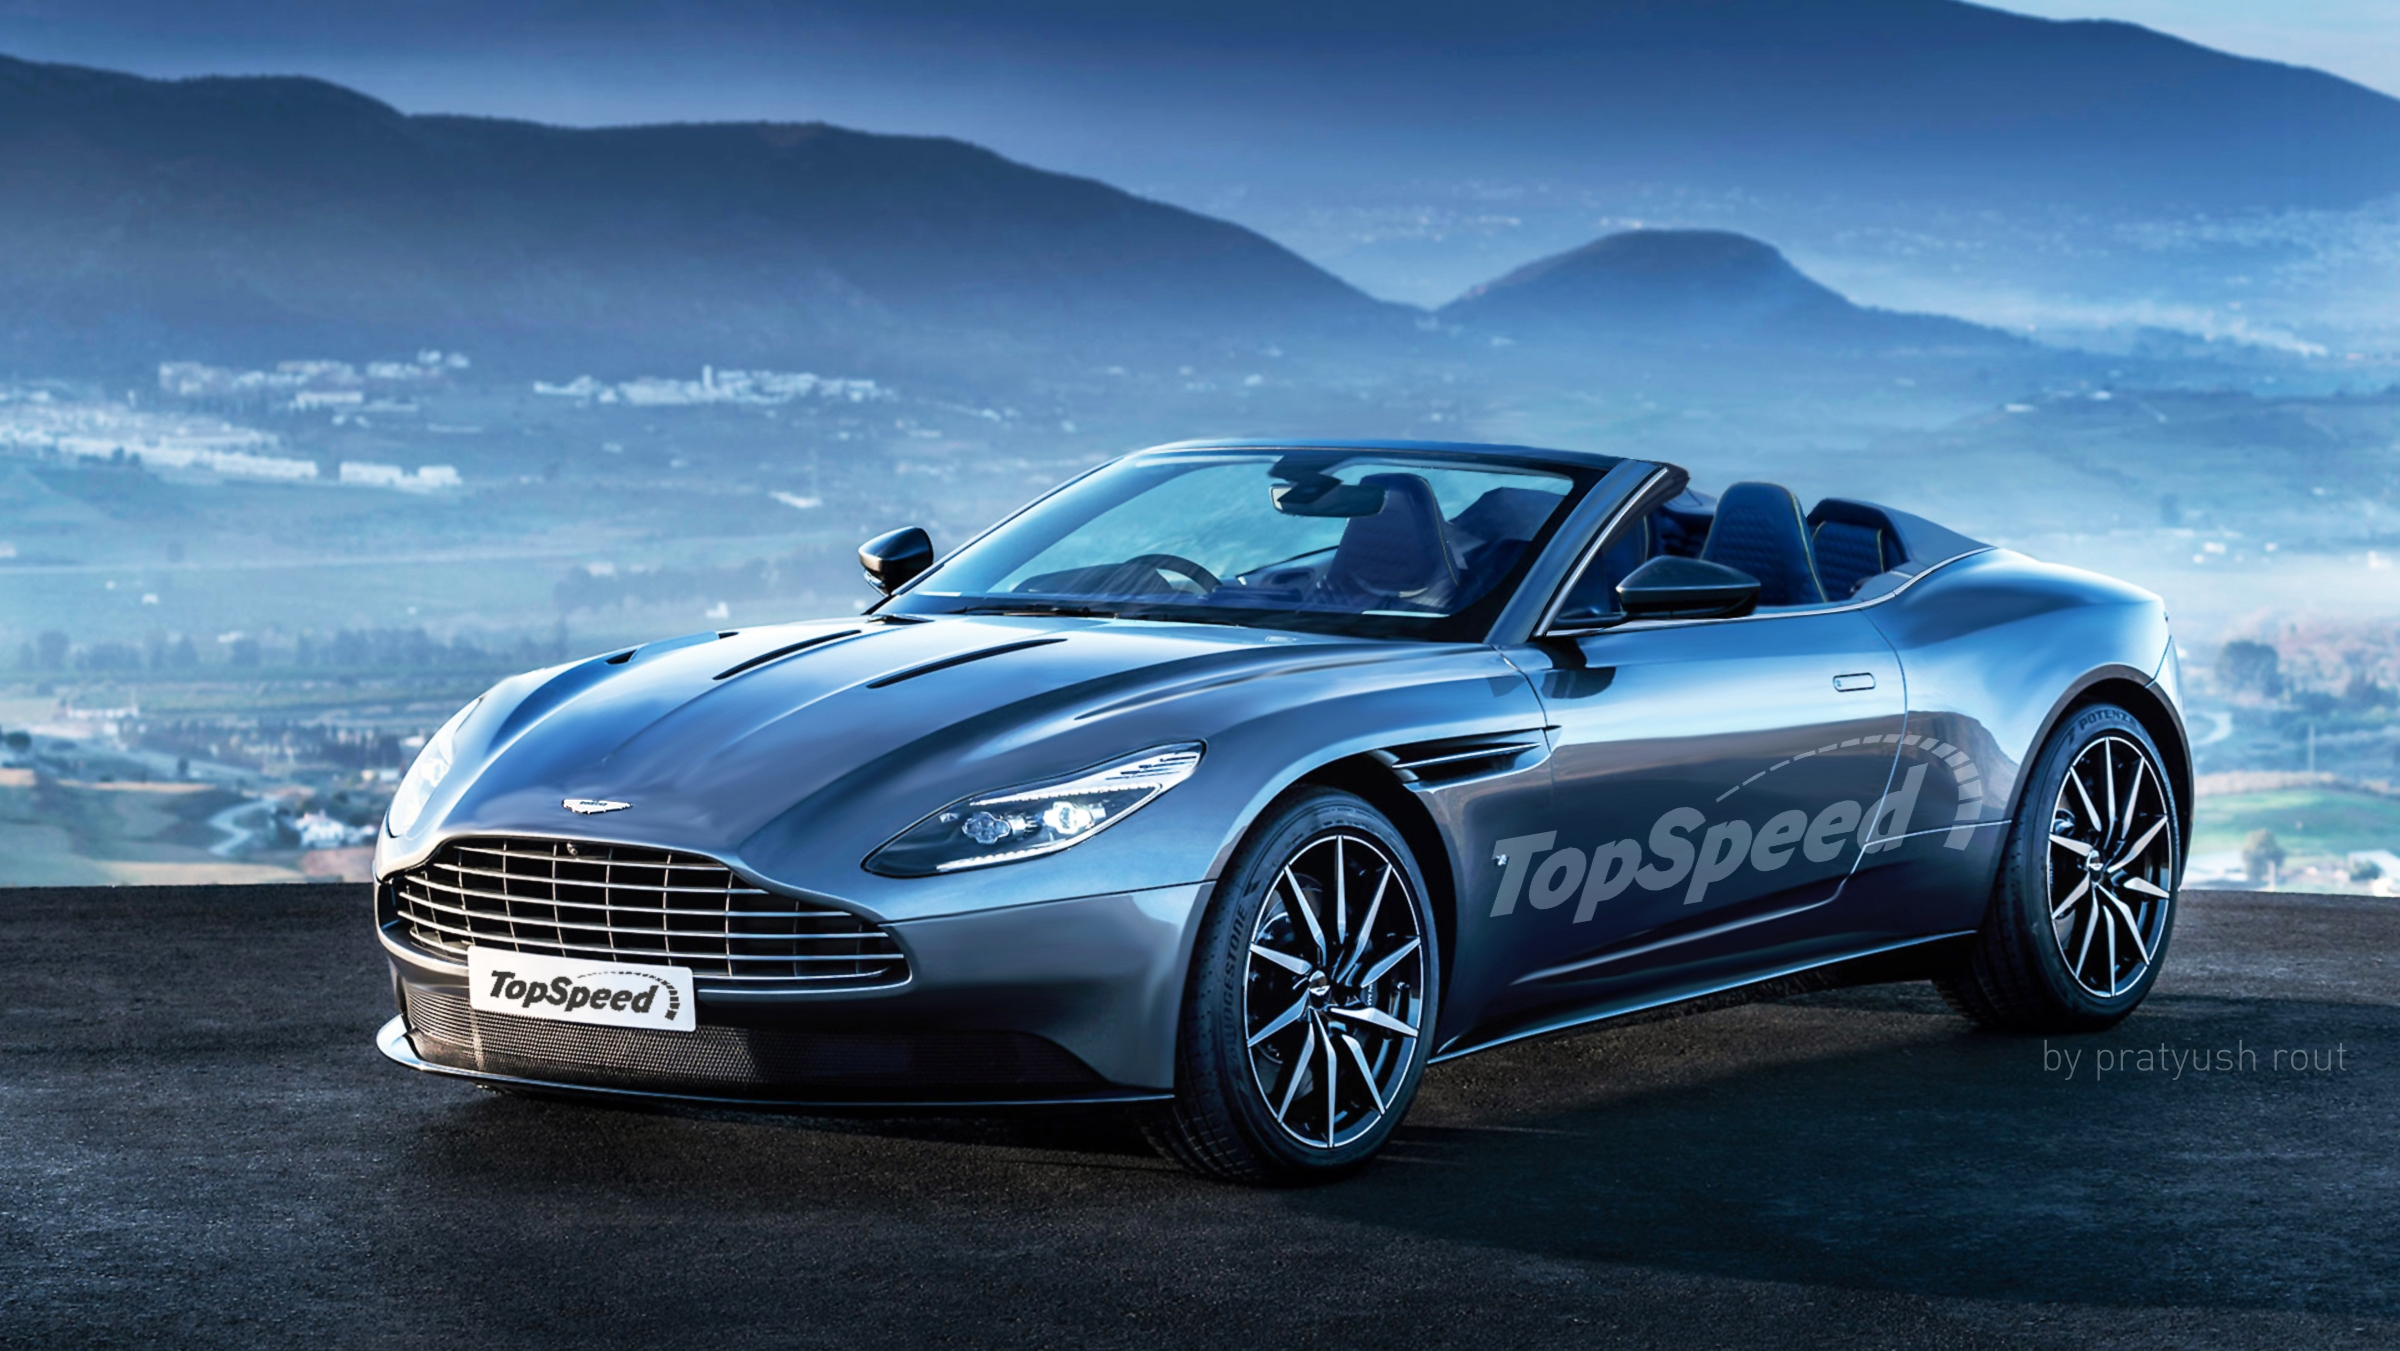 2018 aston martin db11 volante review gallery top speed. Black Bedroom Furniture Sets. Home Design Ideas